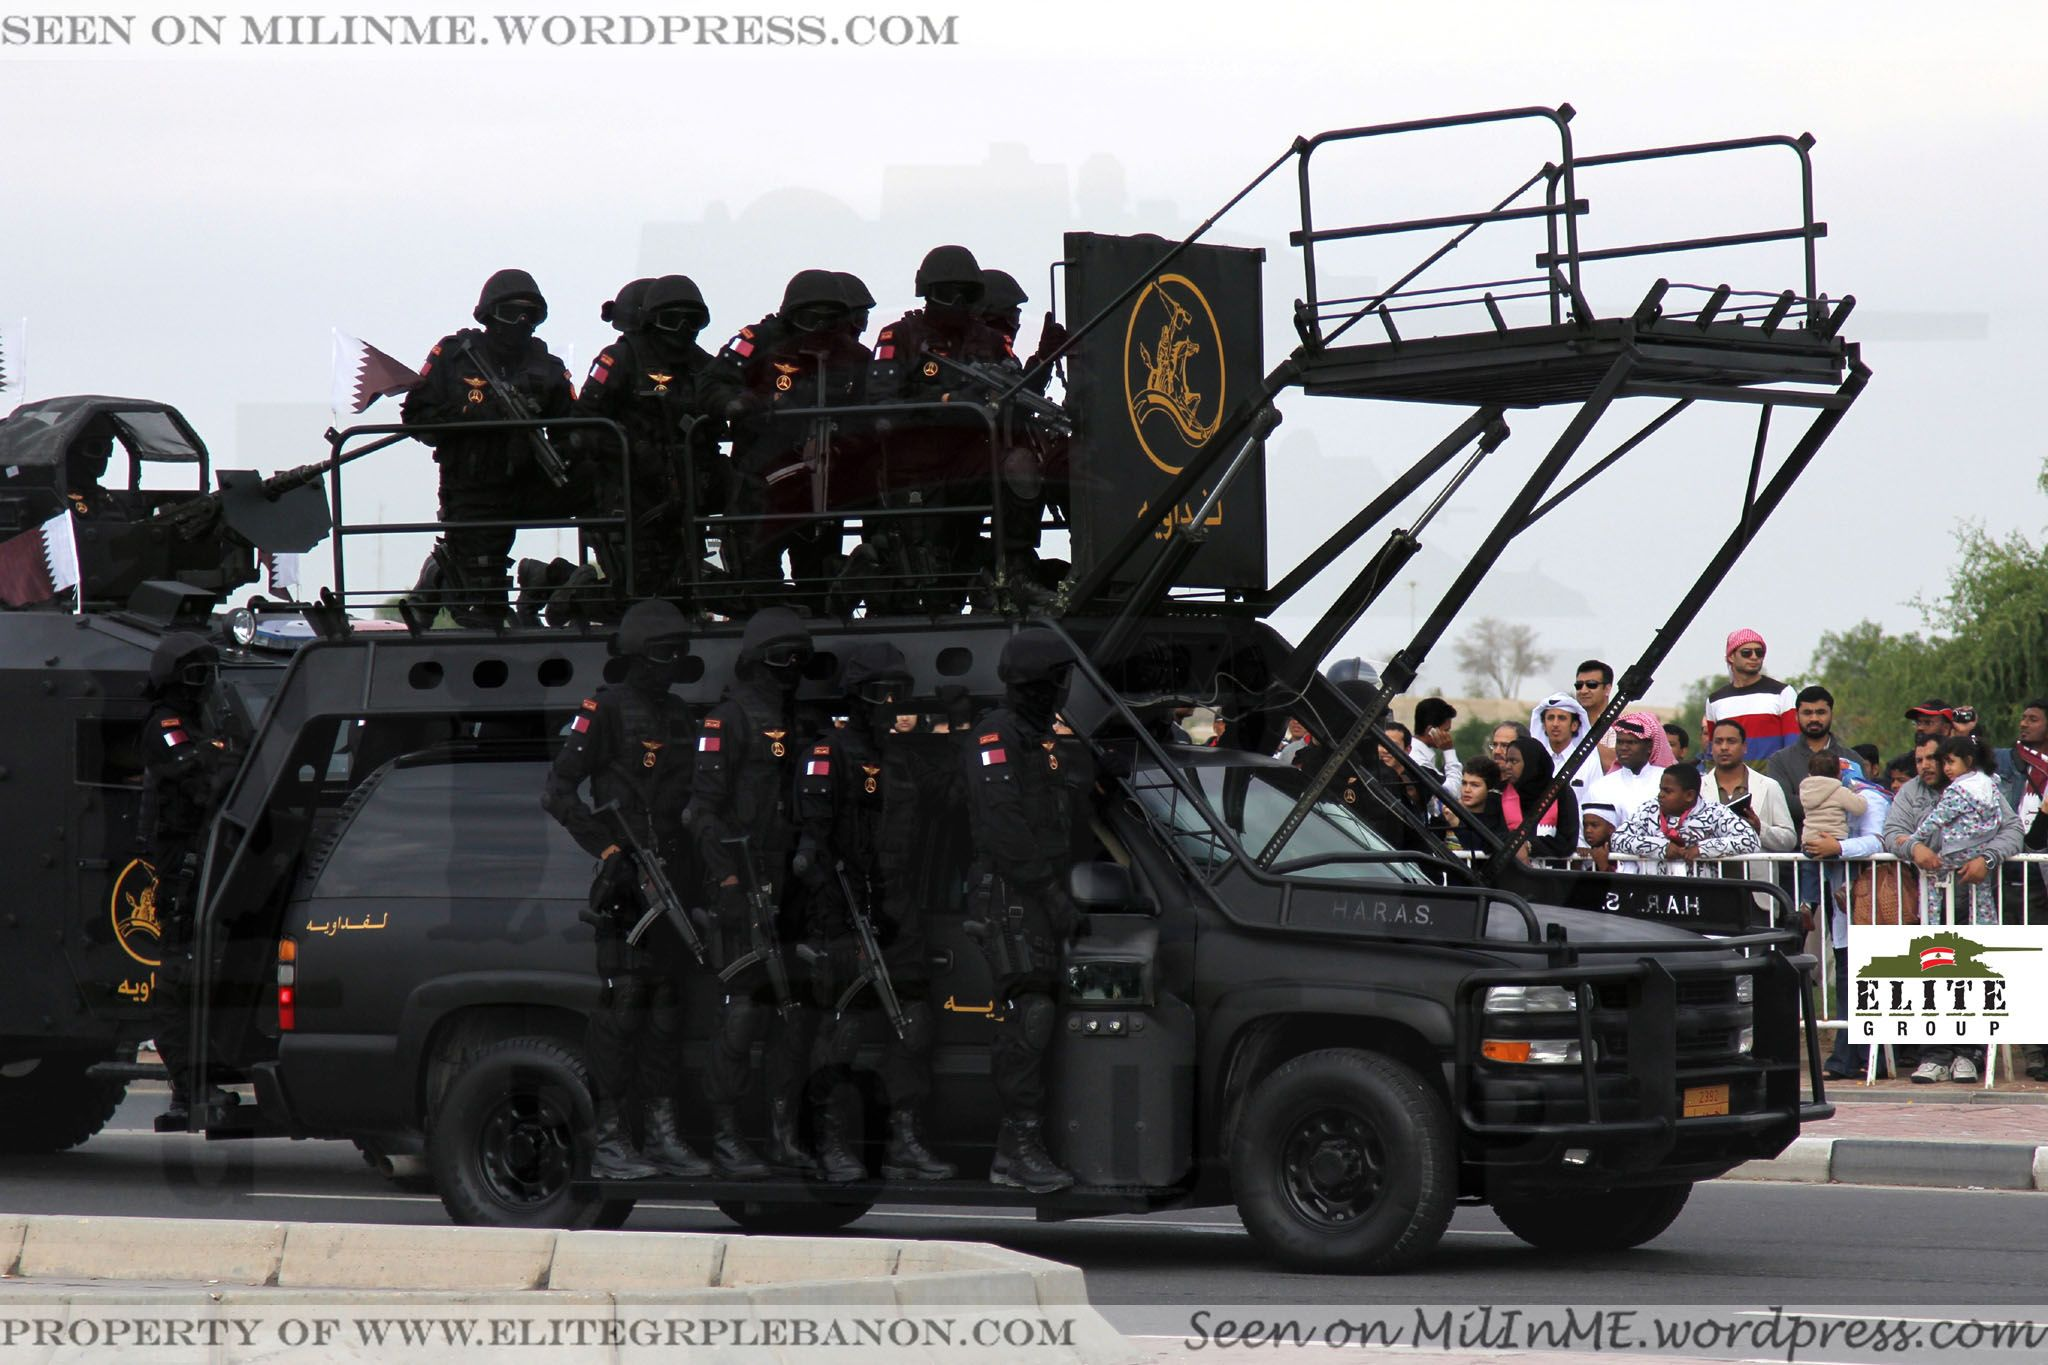 Qatar Internal Security Forces Chevrolet Suburban Swatec Haras